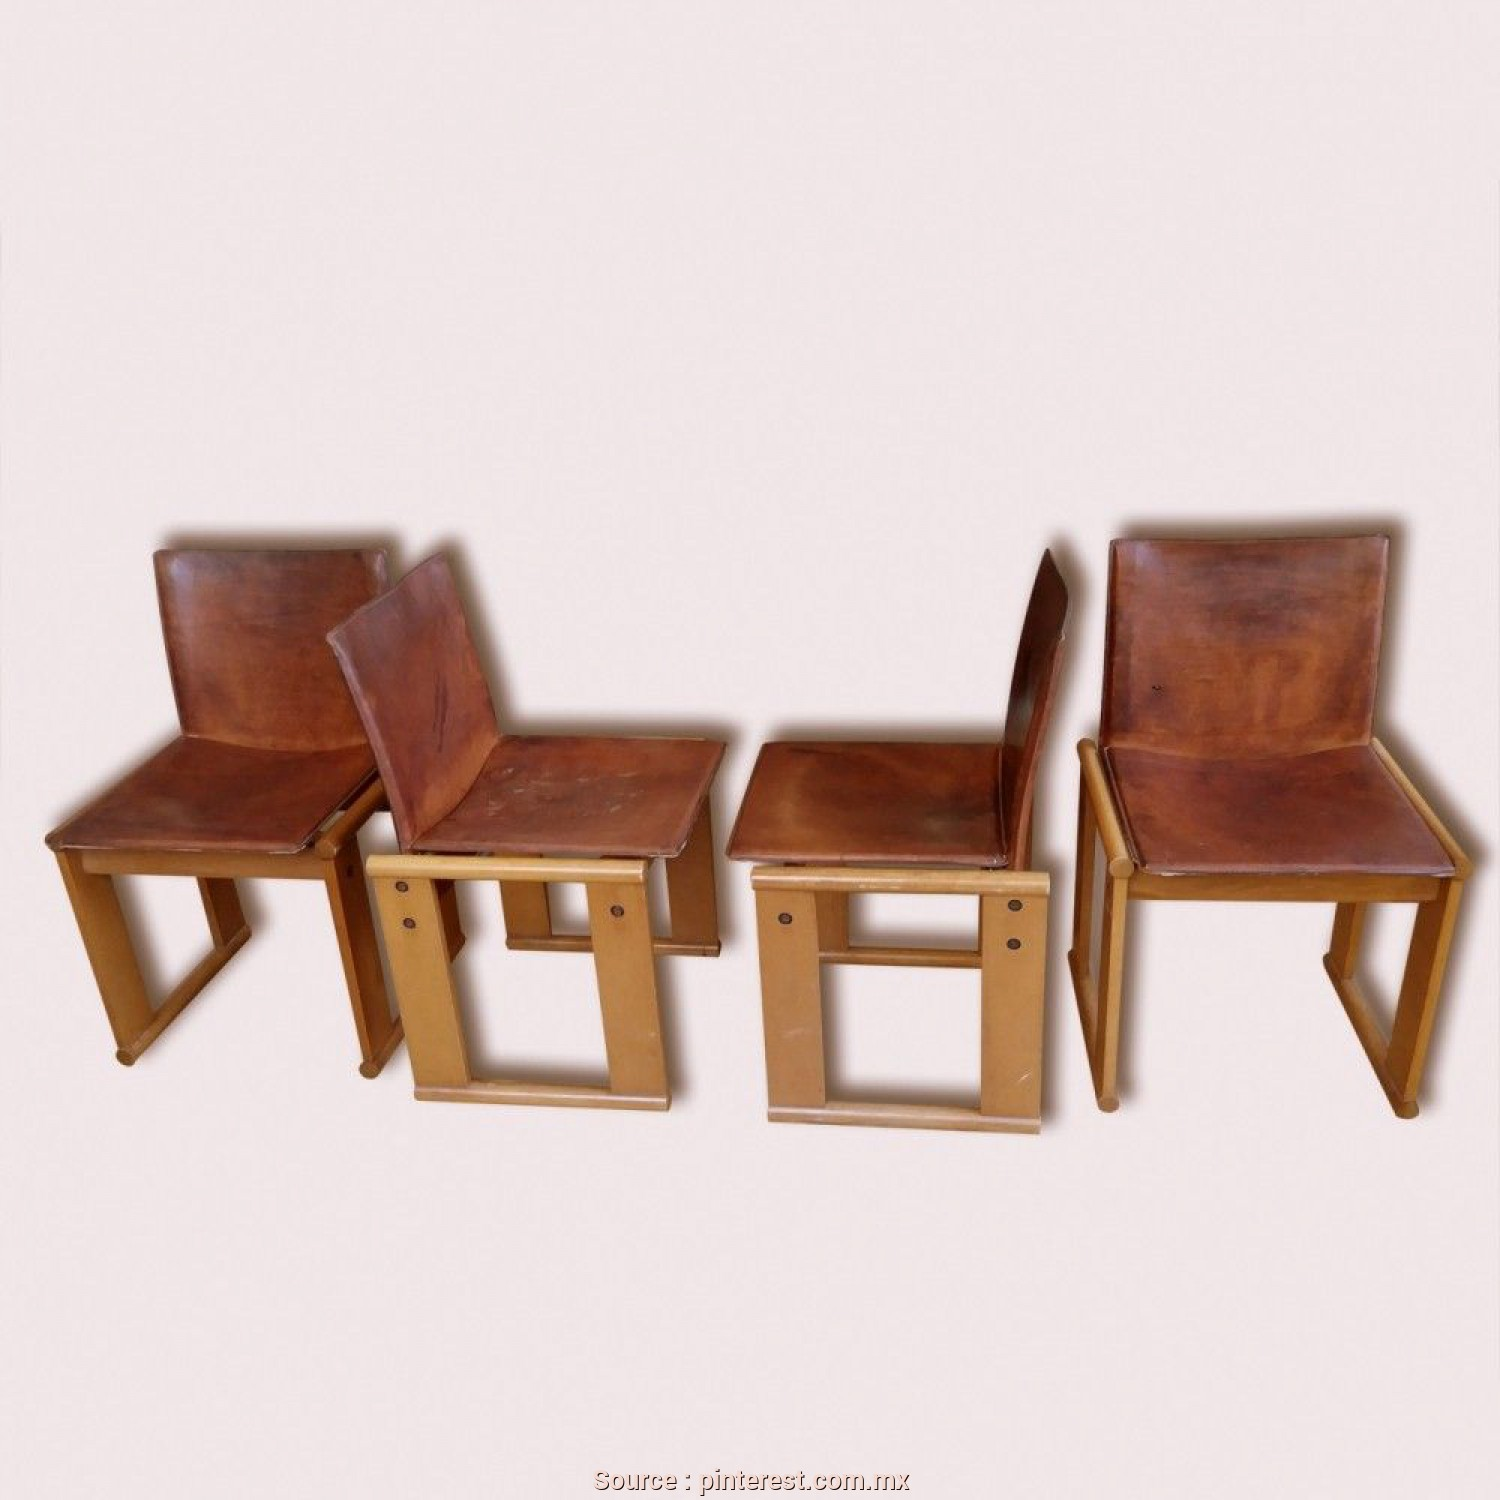 4 Molteni Lettings, Esclusivo Set Of 4 Monk Lounge Chairs From, Seventies By Afra Scarpa & Tobia Scarpa For